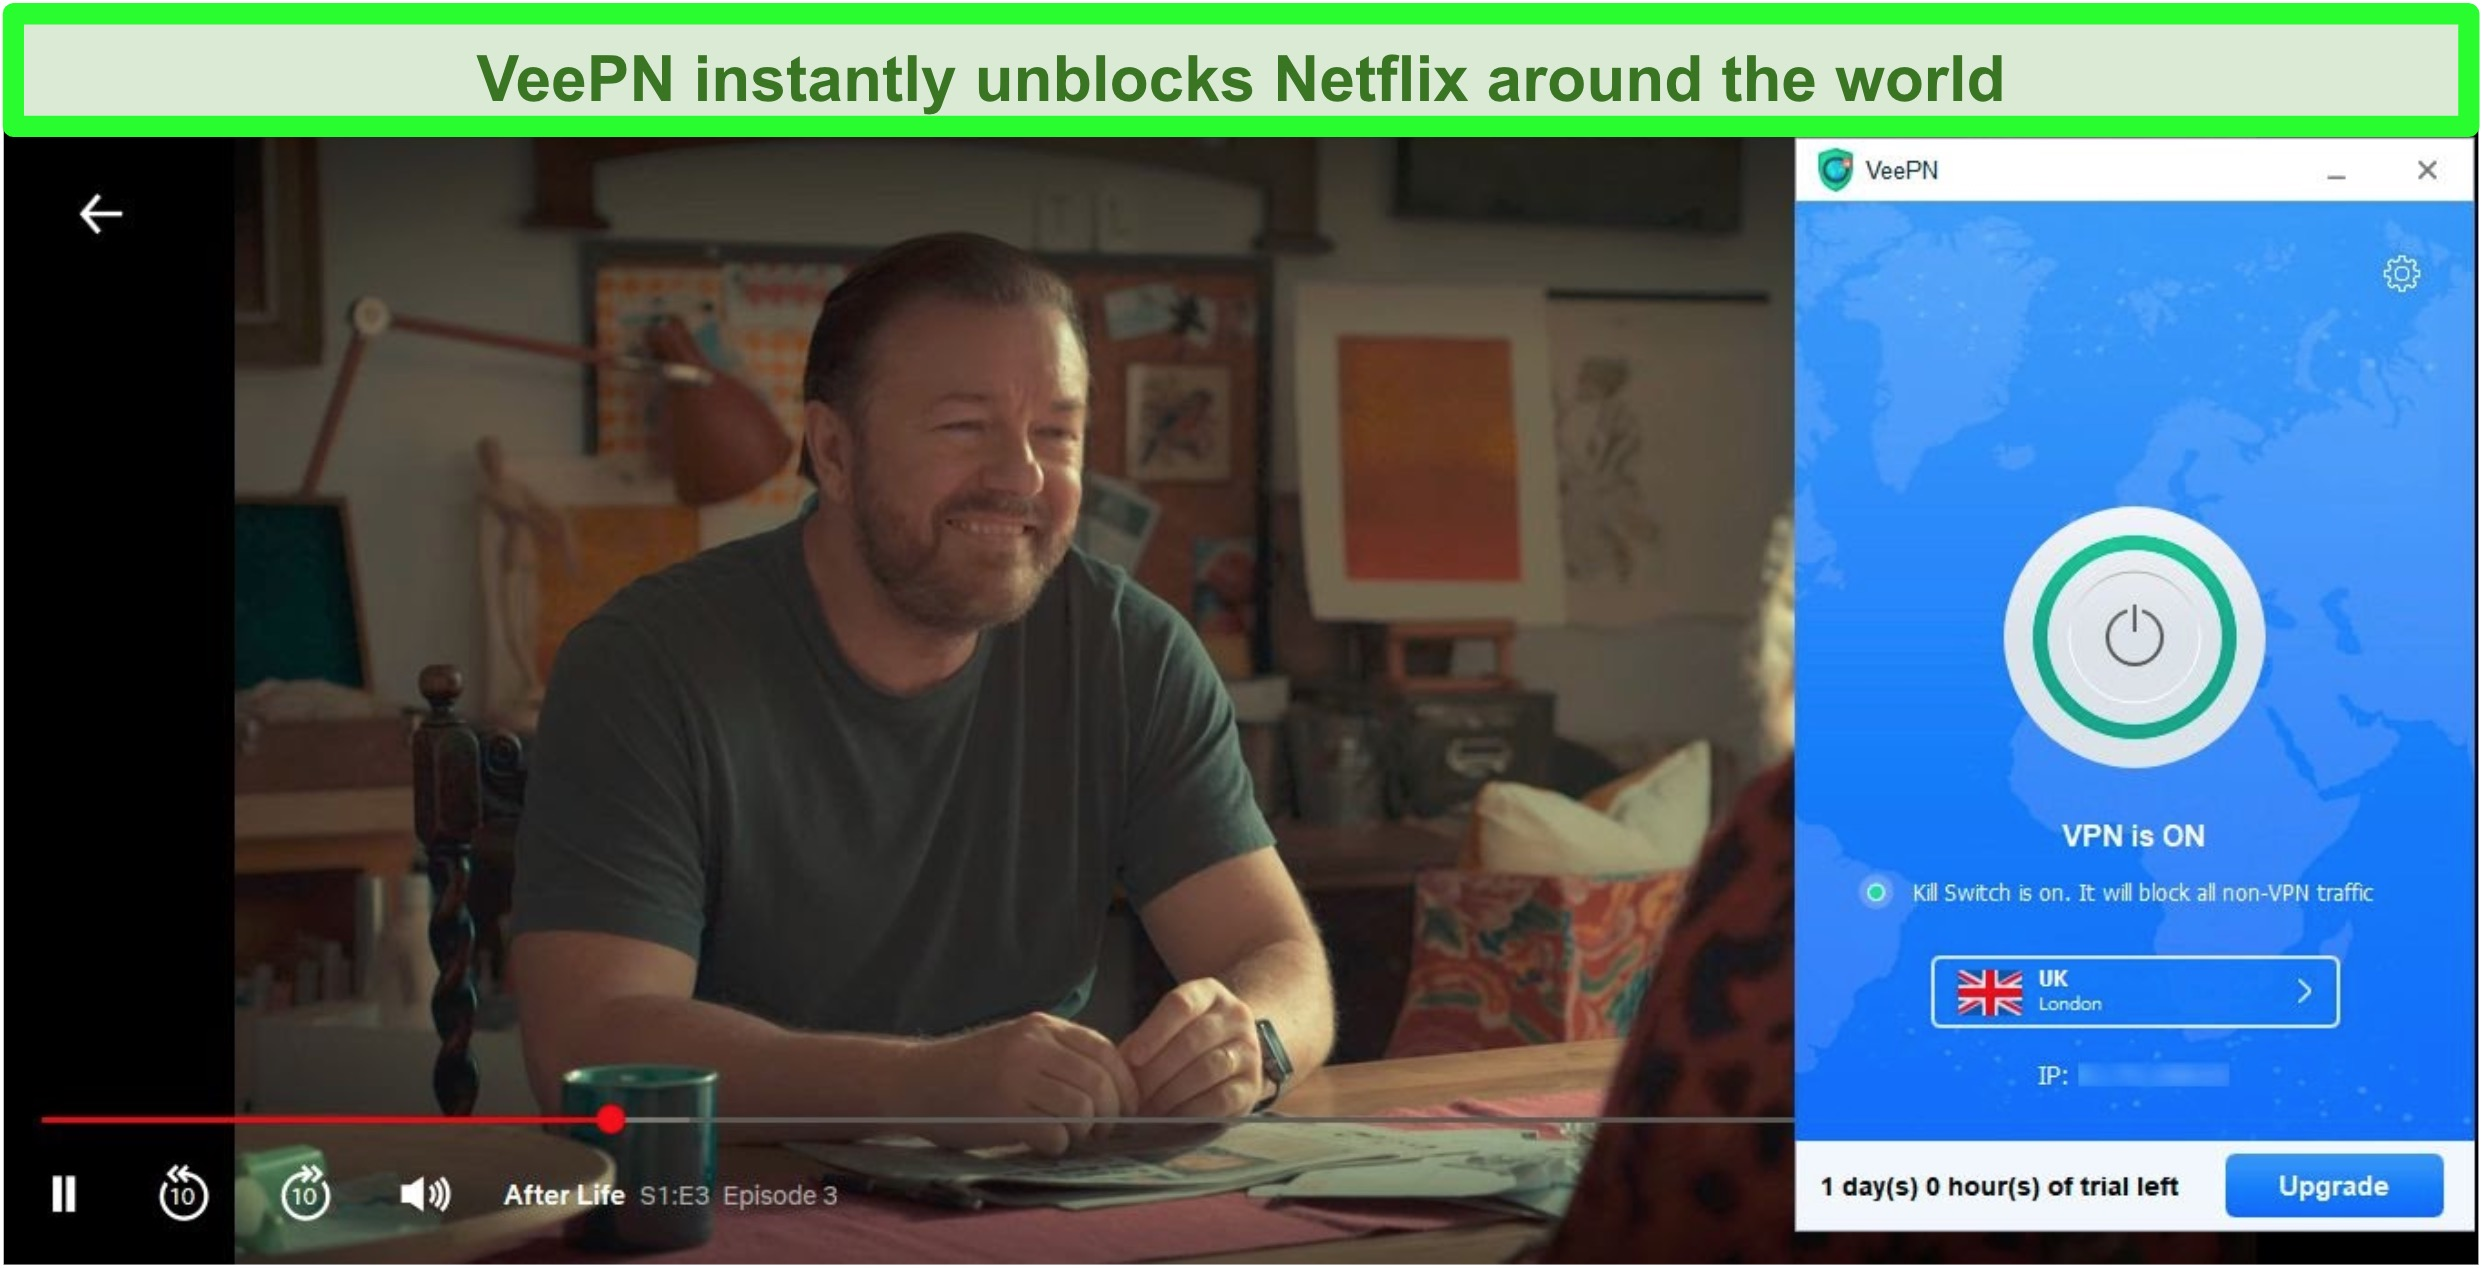 Screenshot of After Life on Netflix streaming while VeePN is connected to a UK server